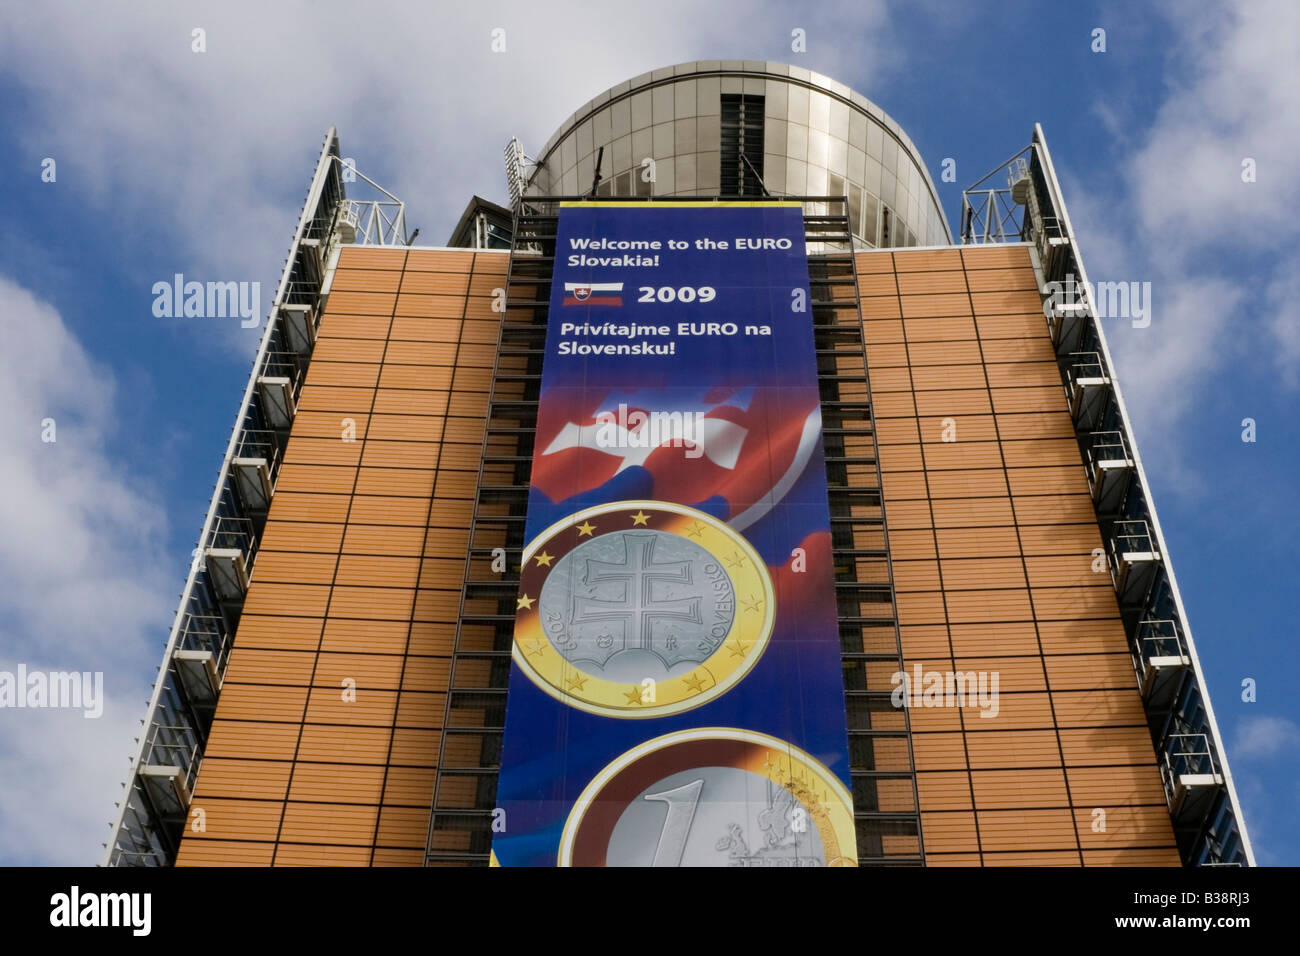 A banner on the side of the Berlaymont building in Brussels, Belgium, welcomes Slovakia to the Eurozone. - Stock Image